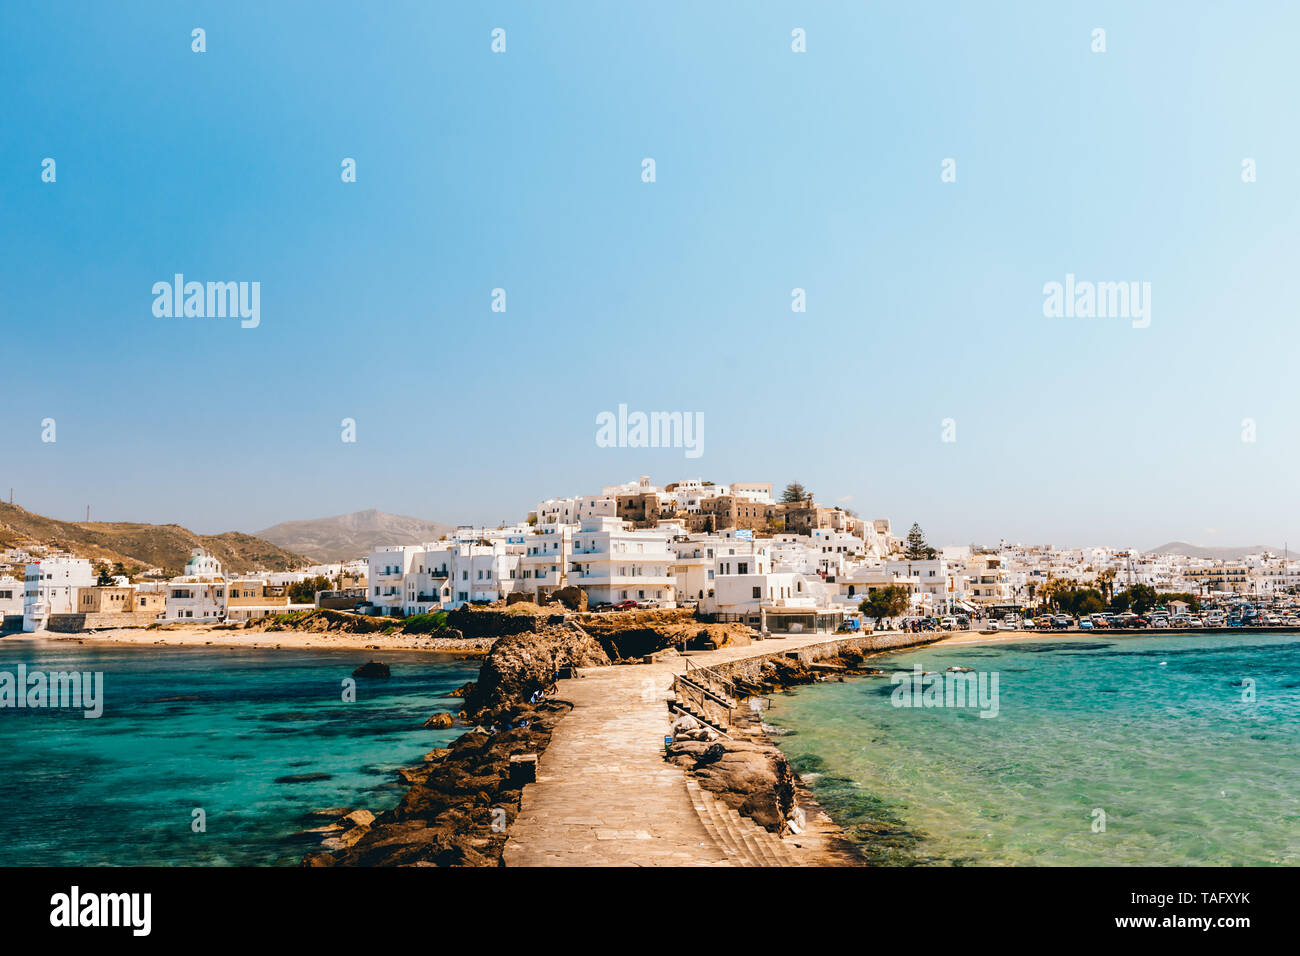 Cityscape of Naxos town on a sunny day, Naxos, Greece - Stock Image